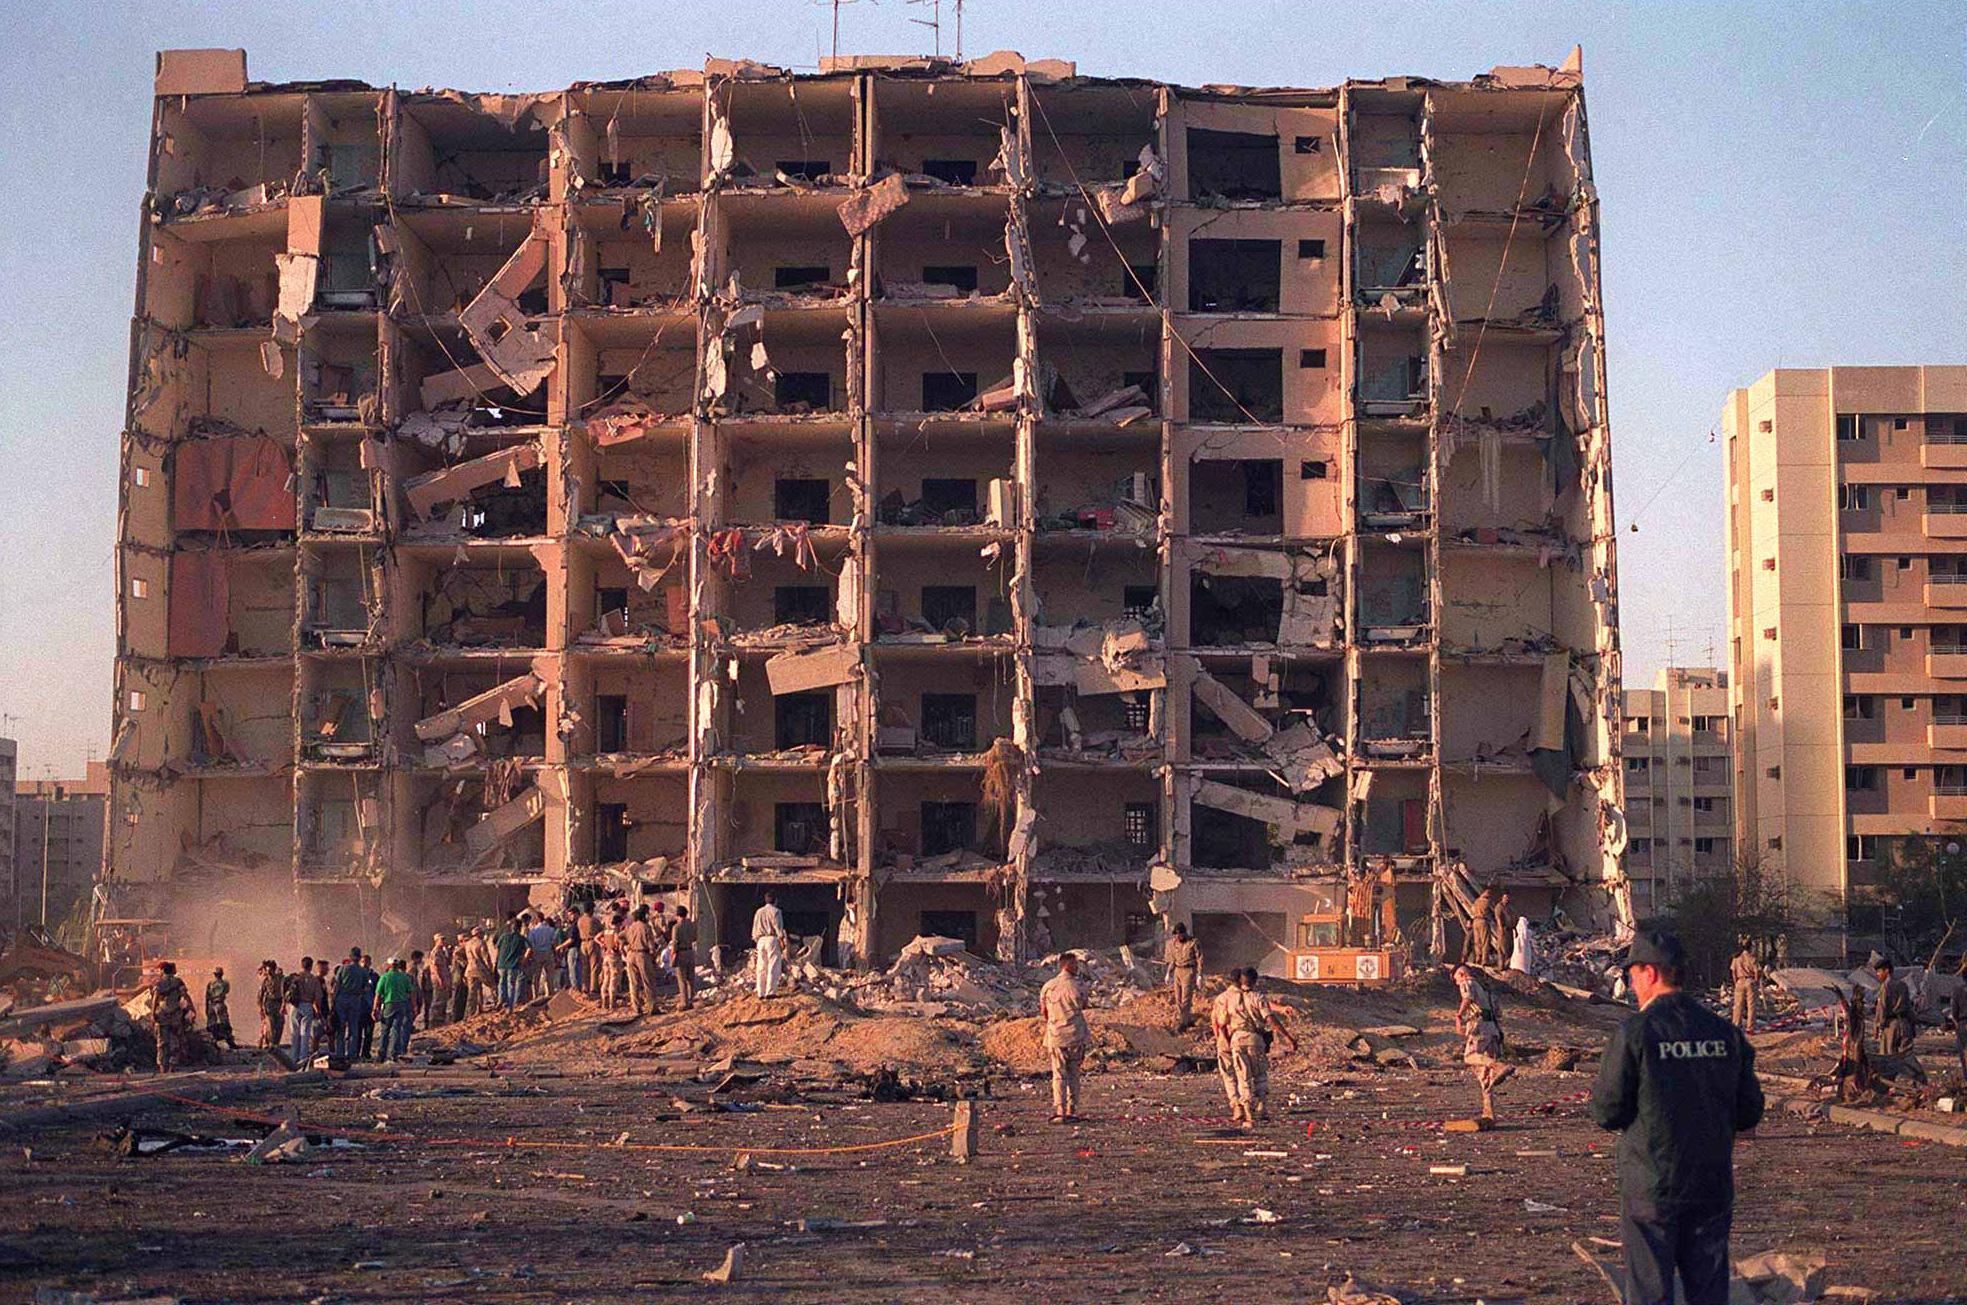 960626-N-00000-002 U.S. and Saudi military personnel survey the damage to Khobar Towers caused by the explosion of a fuel truck outside the northern fence of the facility on King Abdul Aziz Air Base near Dhahran, Saudi Arabia, at 2:55 p.m. EDT, Tuesday, June 25, 1996. Several buildings were damaged and there were numerous U.S. casualties. The latest information from Dhahran indicates that 19 people are dead and 64 people are hospitalized. Additionally, over 200 have been treated for injuries and released. The facility houses U.S. service members and serves as the headquarters for the U.S. Air ForceÕs 4404th Wing (Provisional), Southwest Asia. DoD photo.